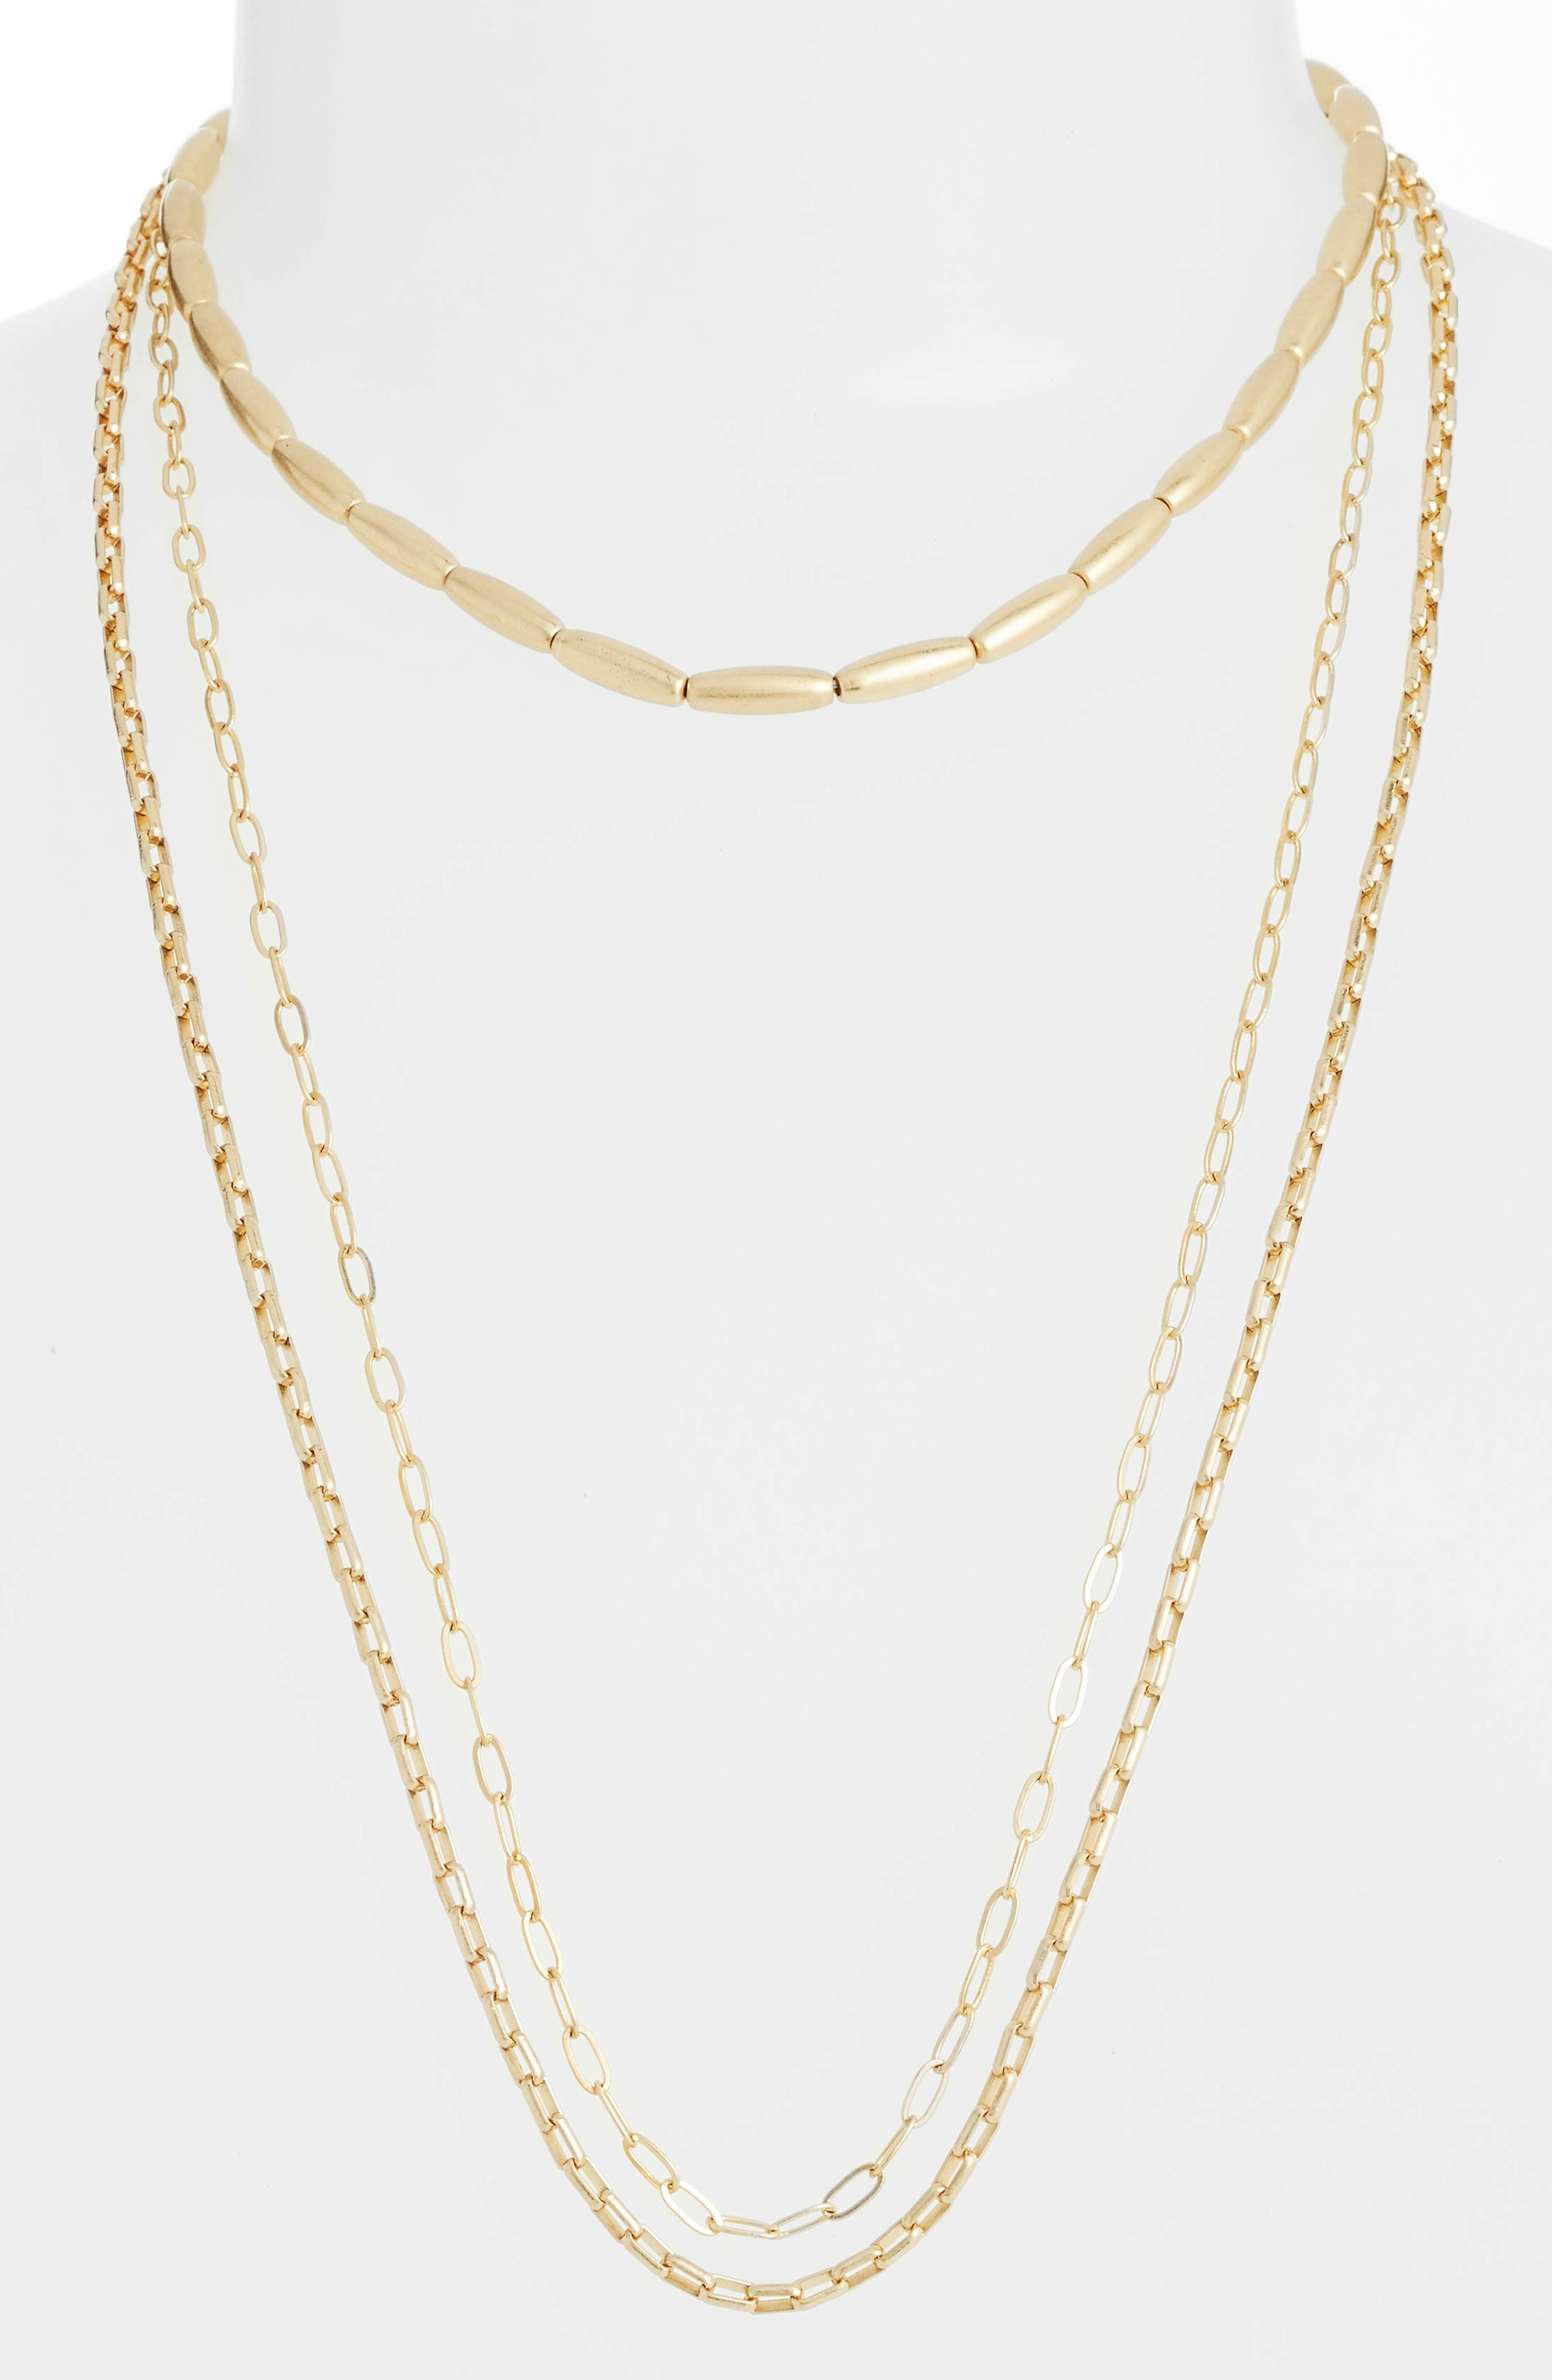 Sadie Strands Layered Necklace,                             Main thumbnail 1, color,                             710